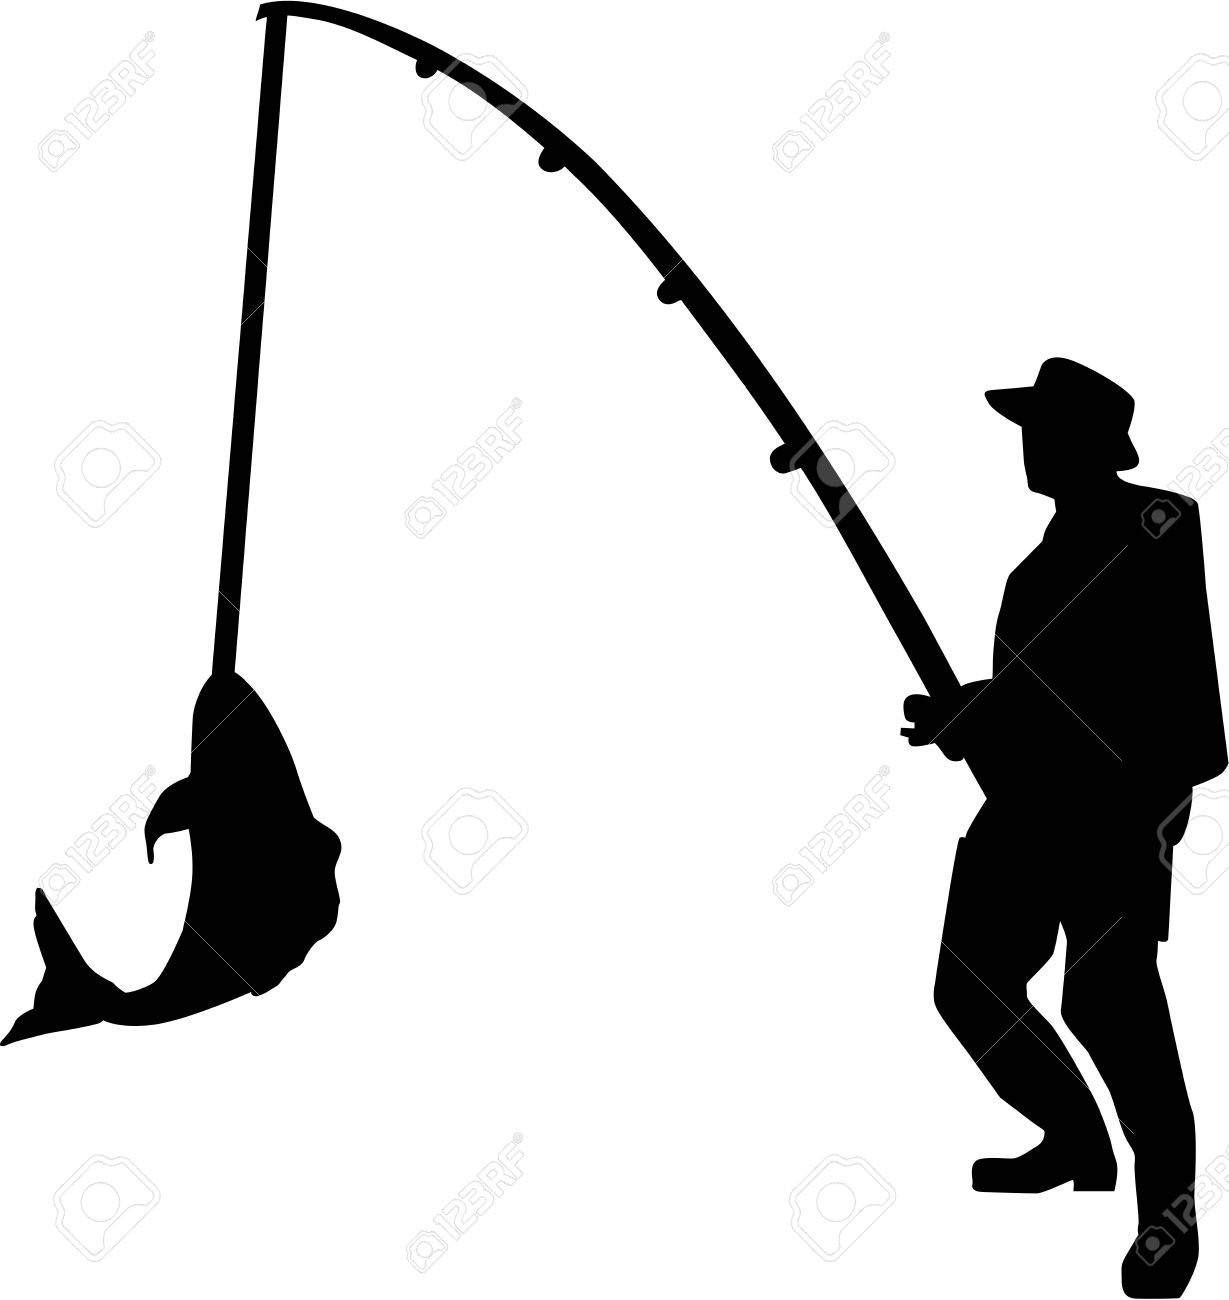 Black and white free. Fisherman clipart fishing pier